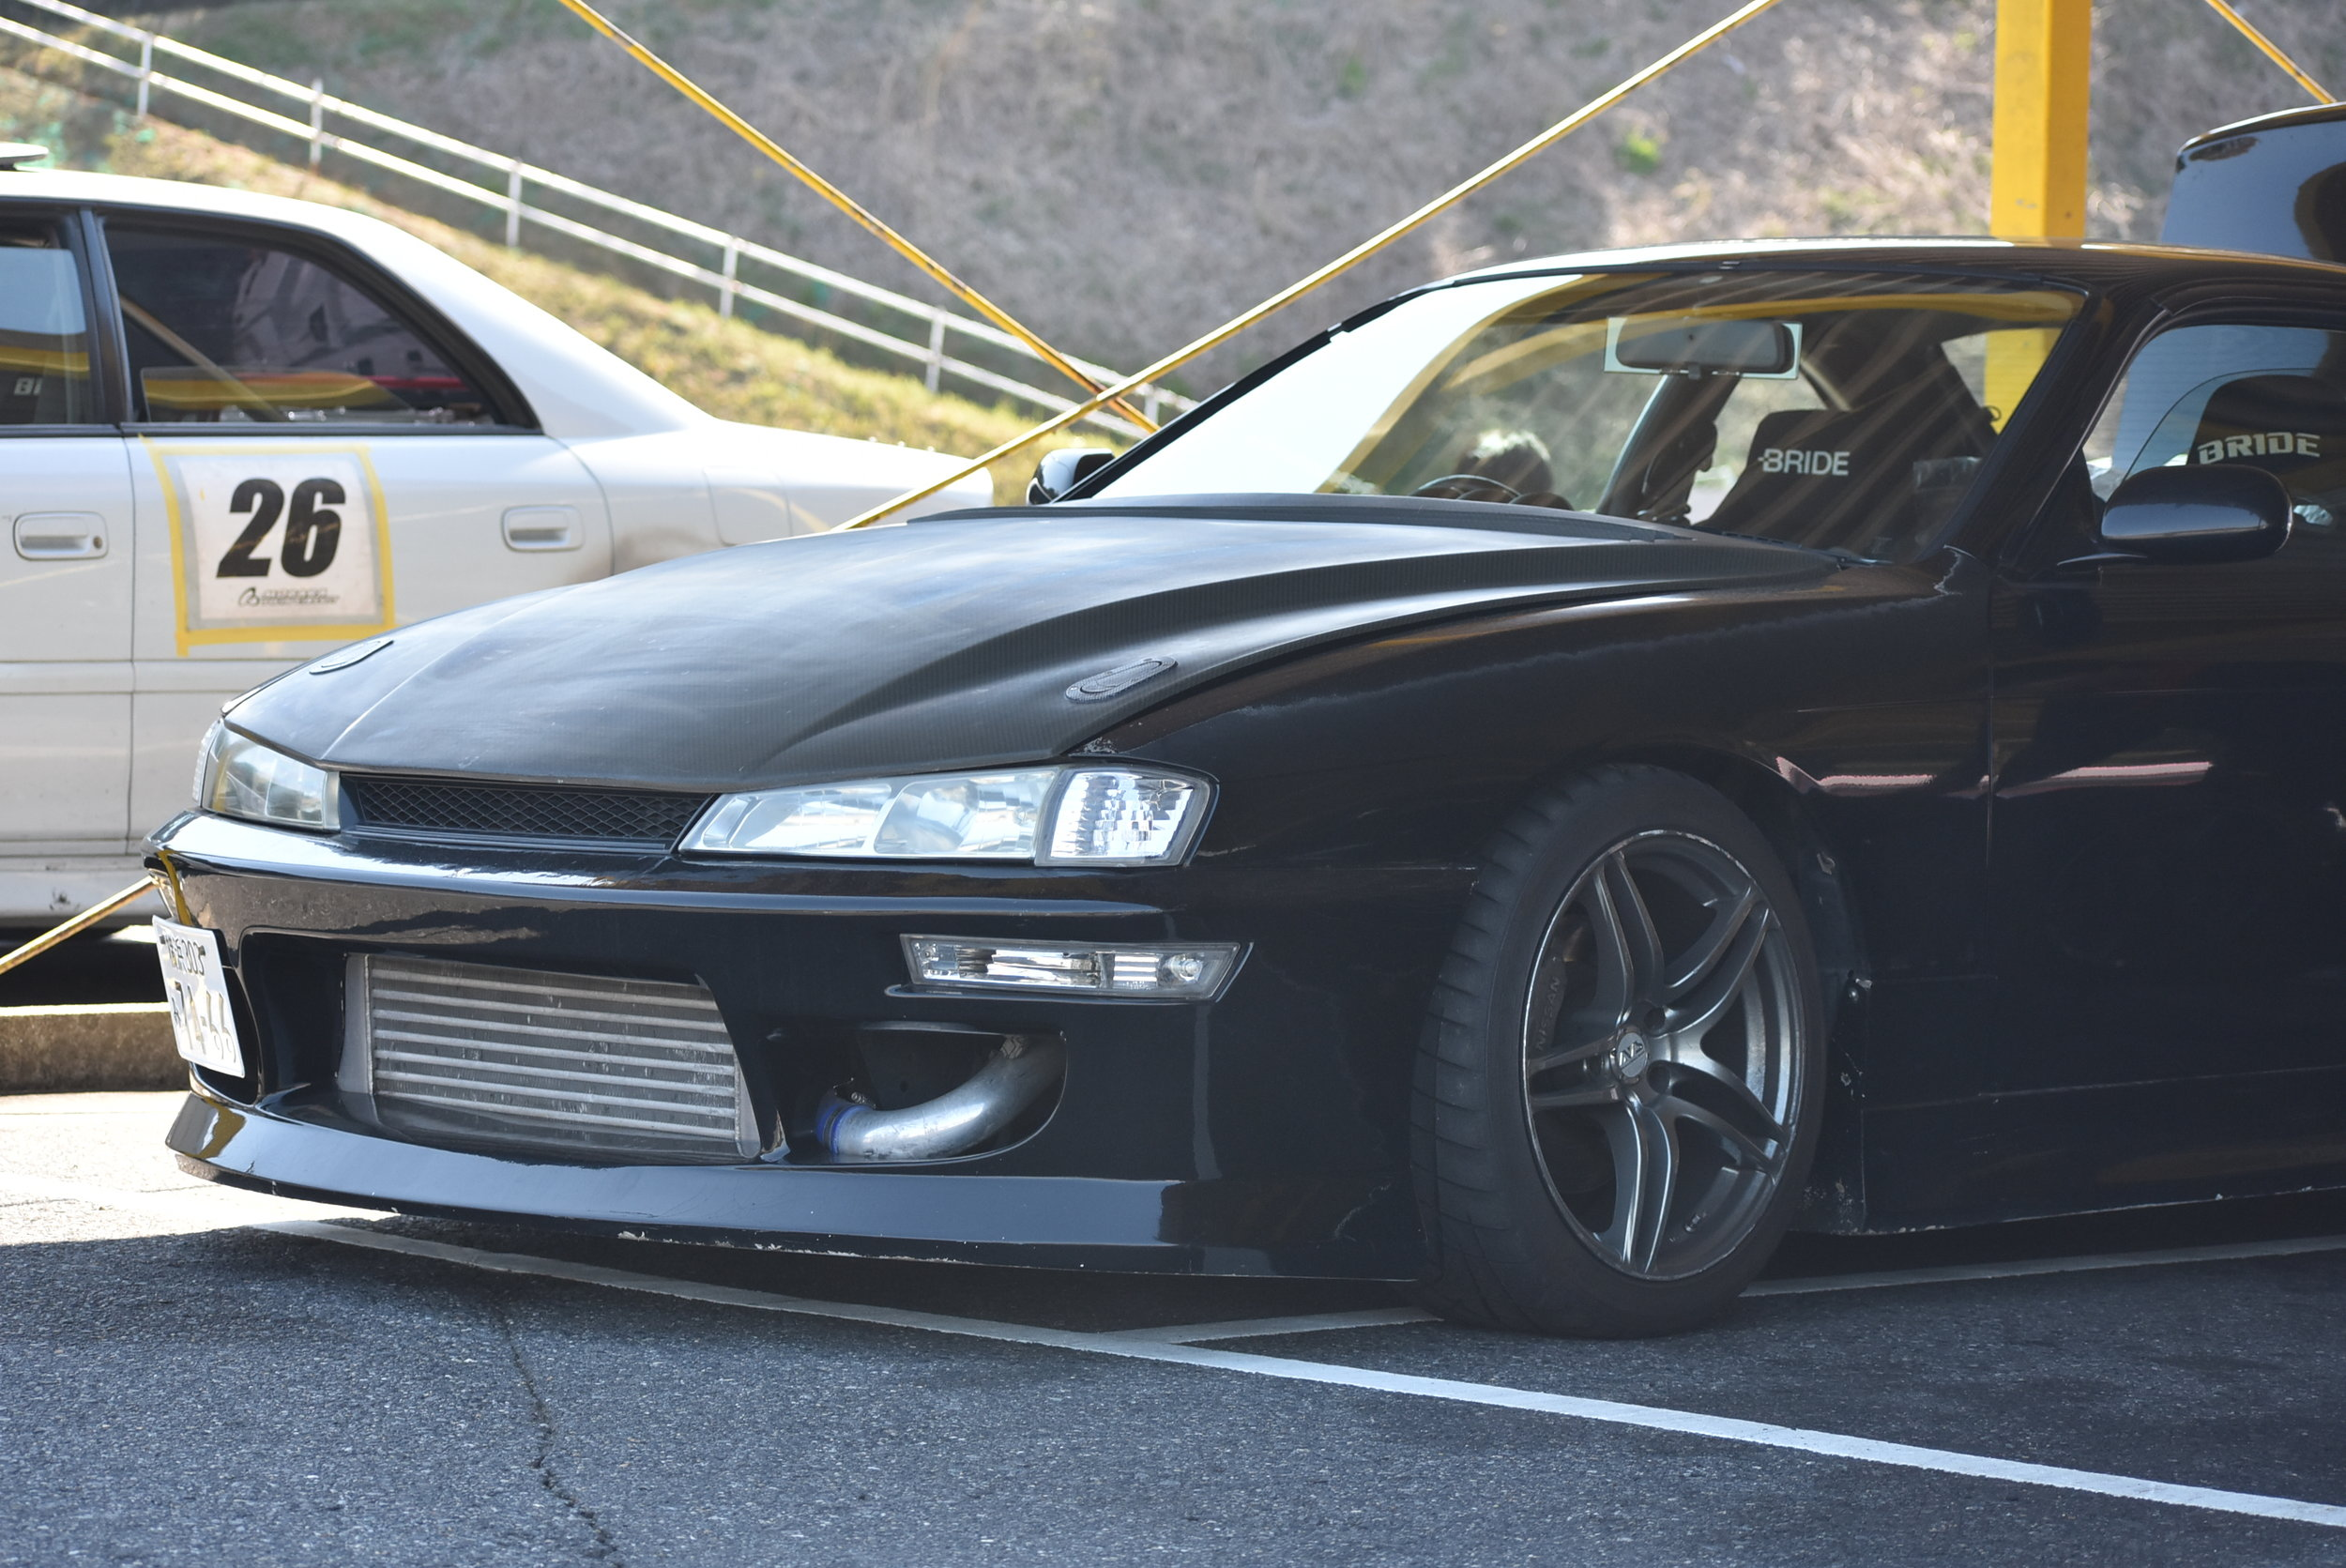 S14 Kouki is my favorite.